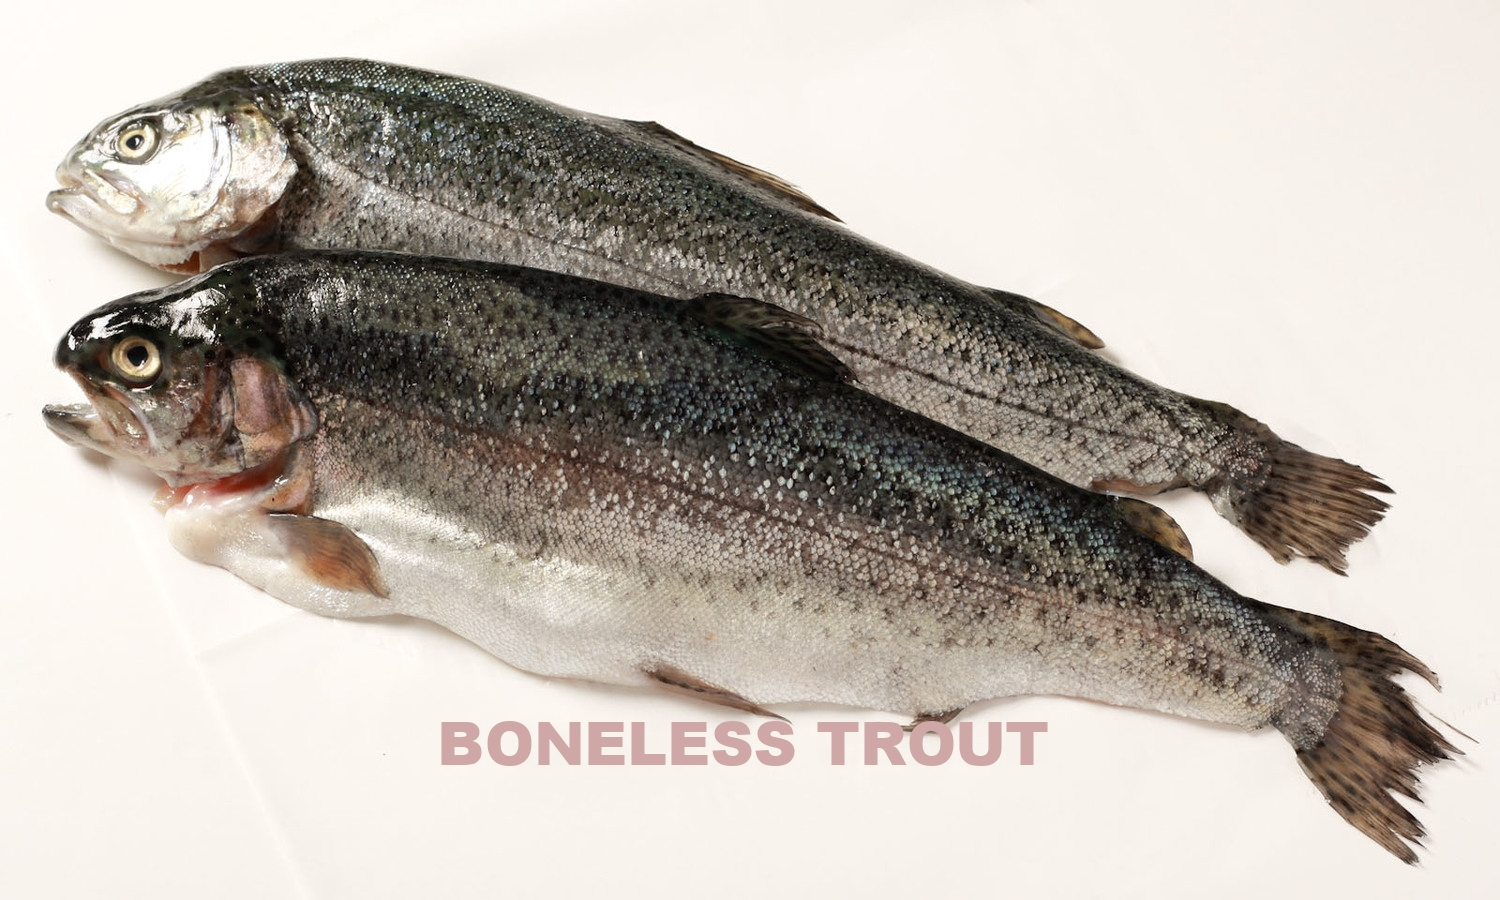 San_Francisco_Fish_Co,BonelessTrout,2ct,1lb (1 of 3).jpg